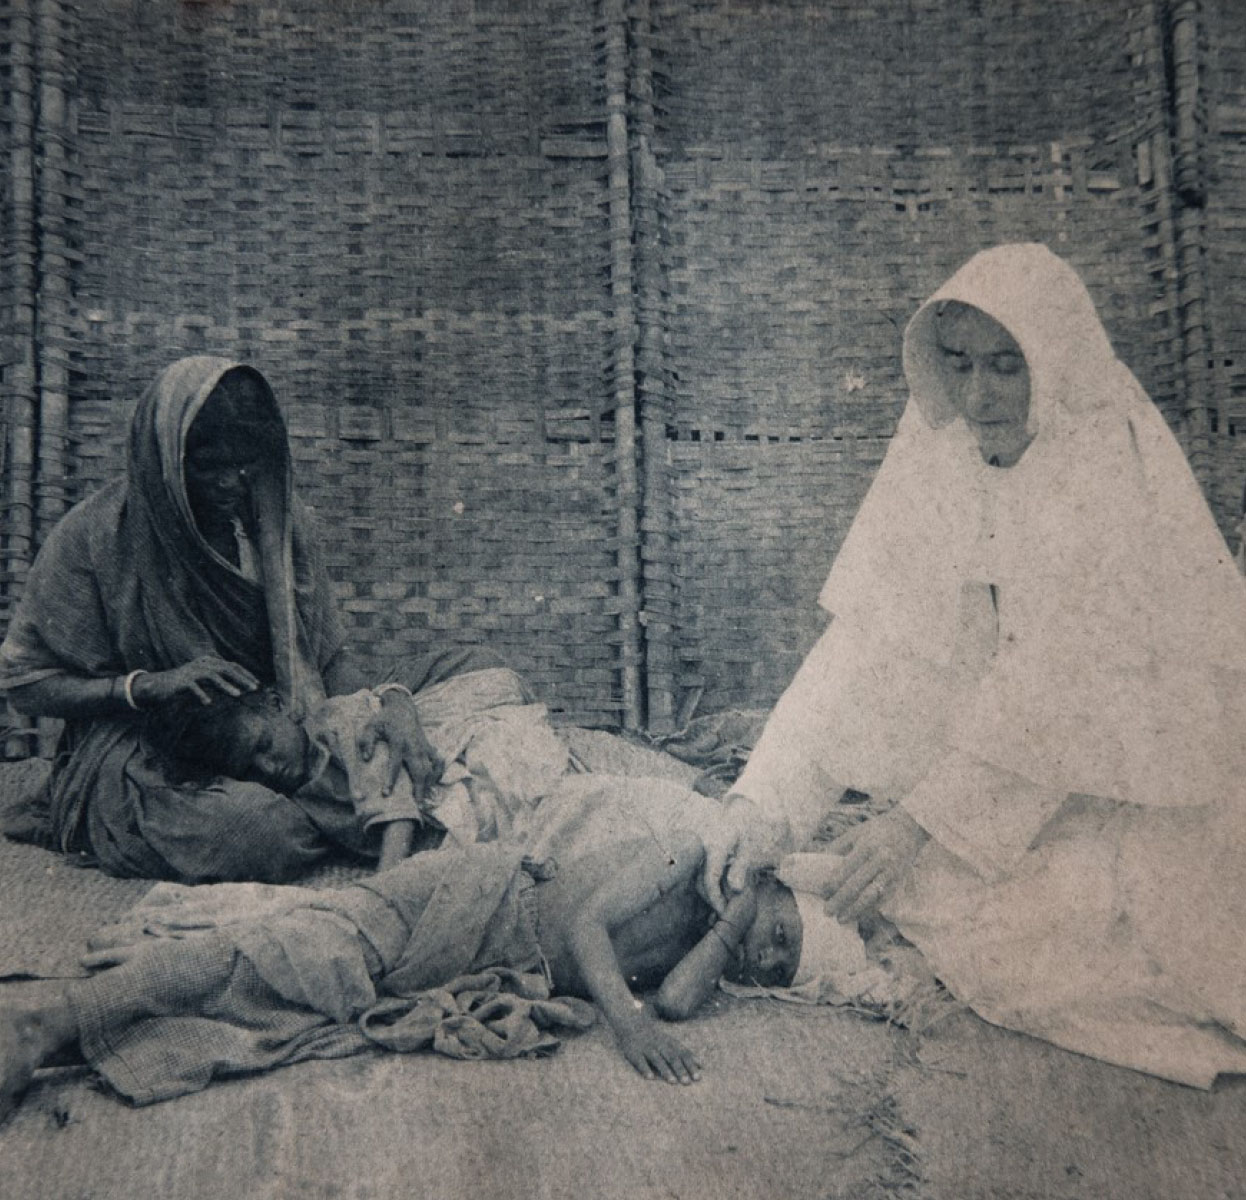 Dr Sr Mary Glowrey attends a patient, Guntur, India, c. 1920 (Photo courtesy: Mary Glowrey Collection)